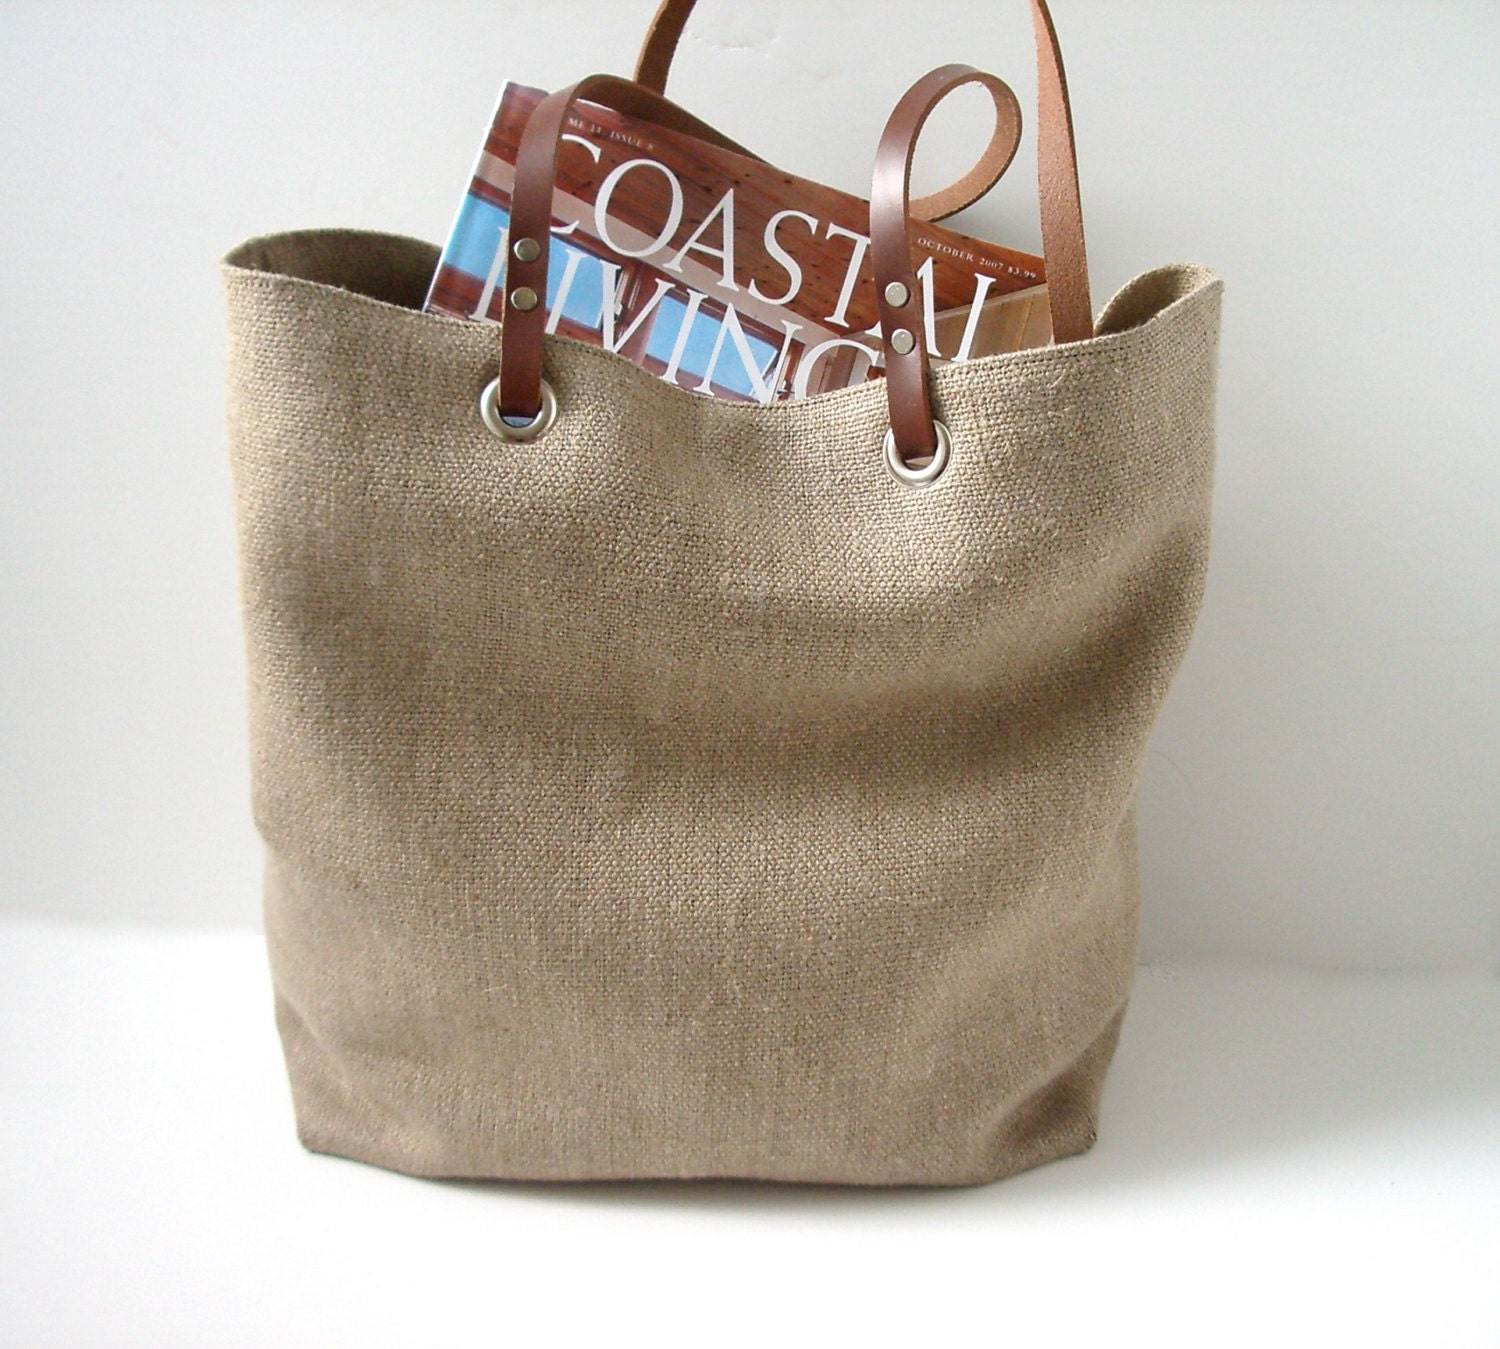 Woven Jute Tote Bag Casual Beach Bag